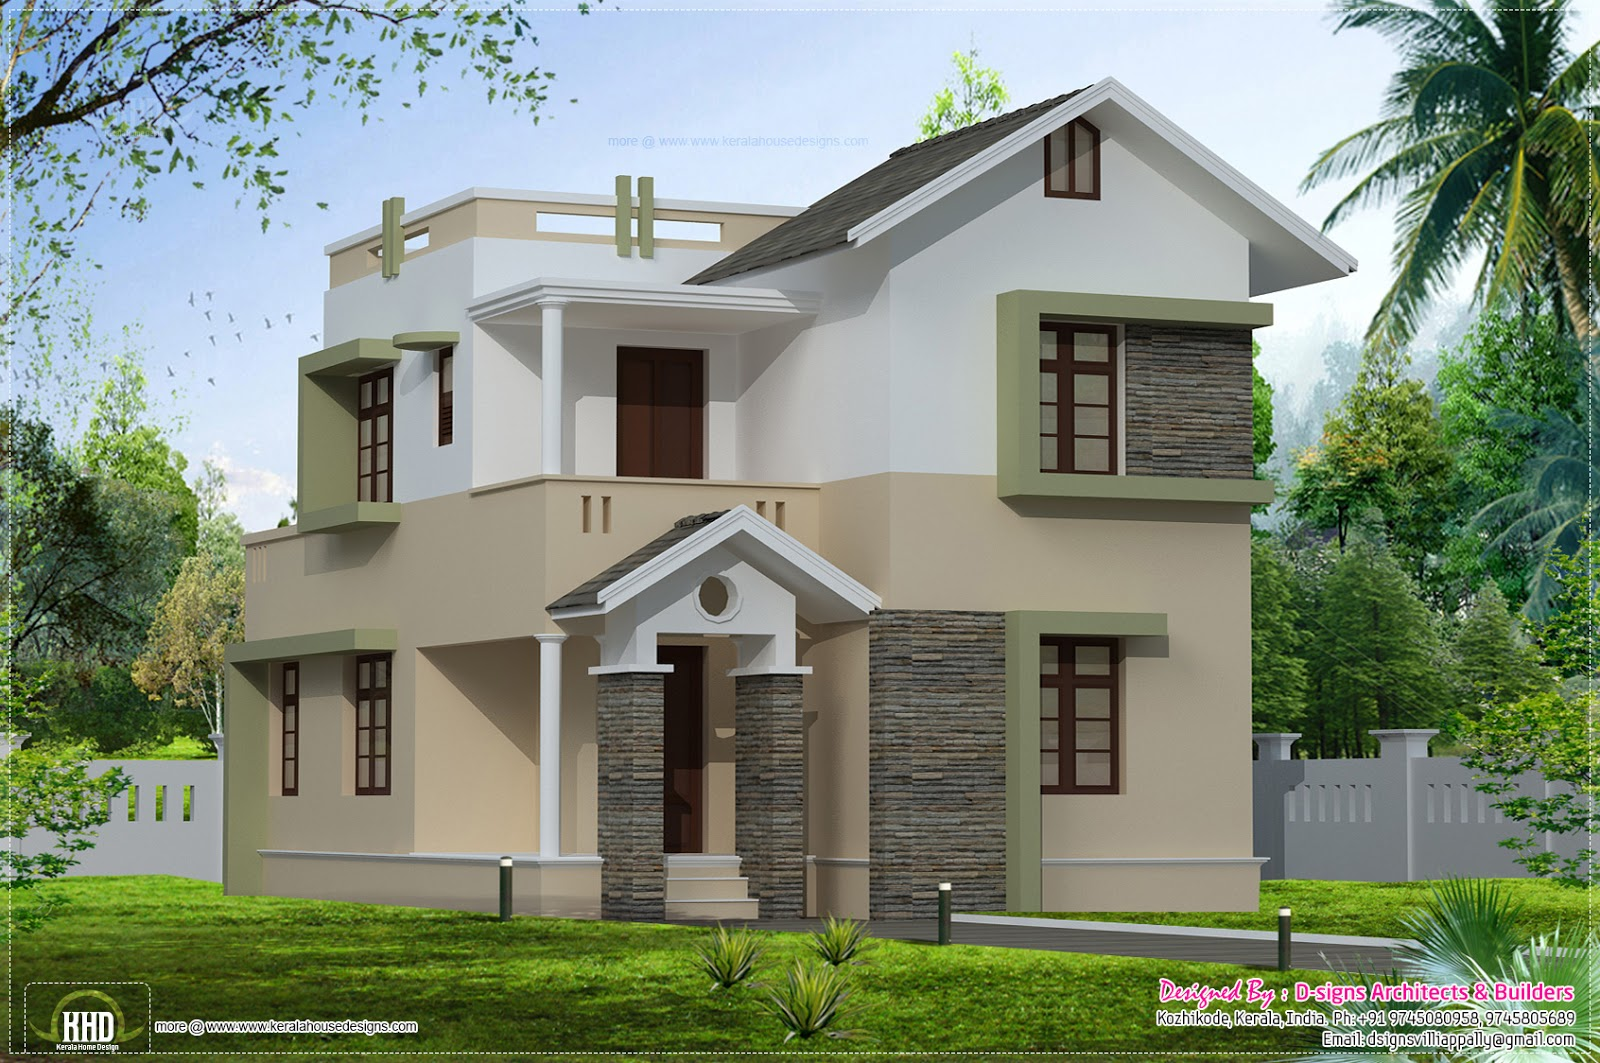 Front Elevation Of Villas In Kerala : Front elevation of small houses home design and decor